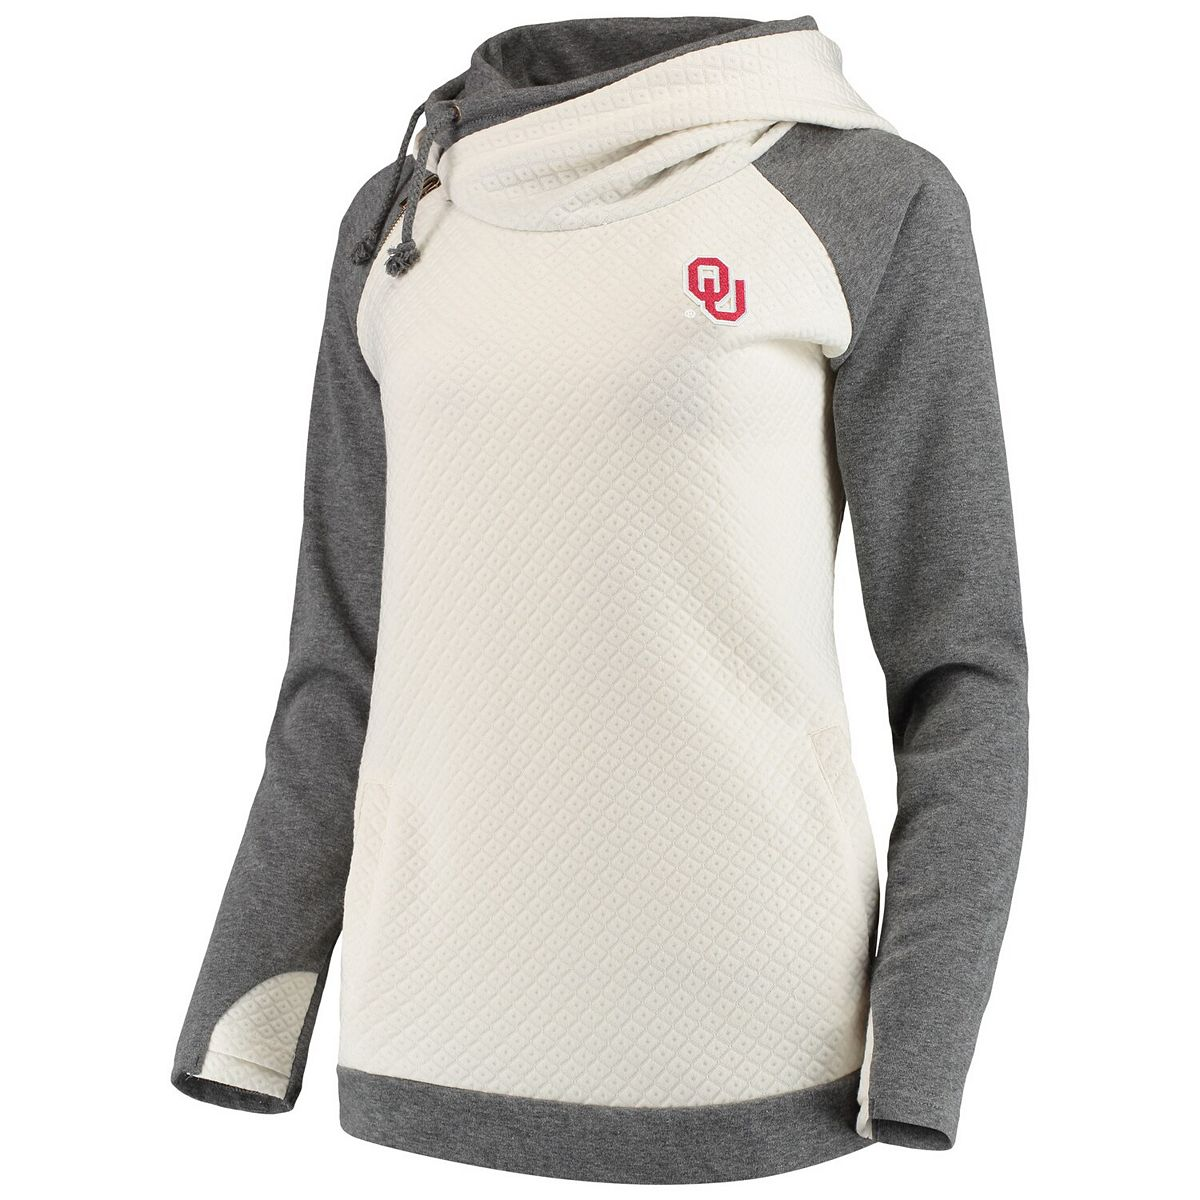 Women's Cream/Charcoal Oklahoma Sooners More Chill Layered Quilted Jacquard Pullover Hooded Sweatshirt 8TWxt